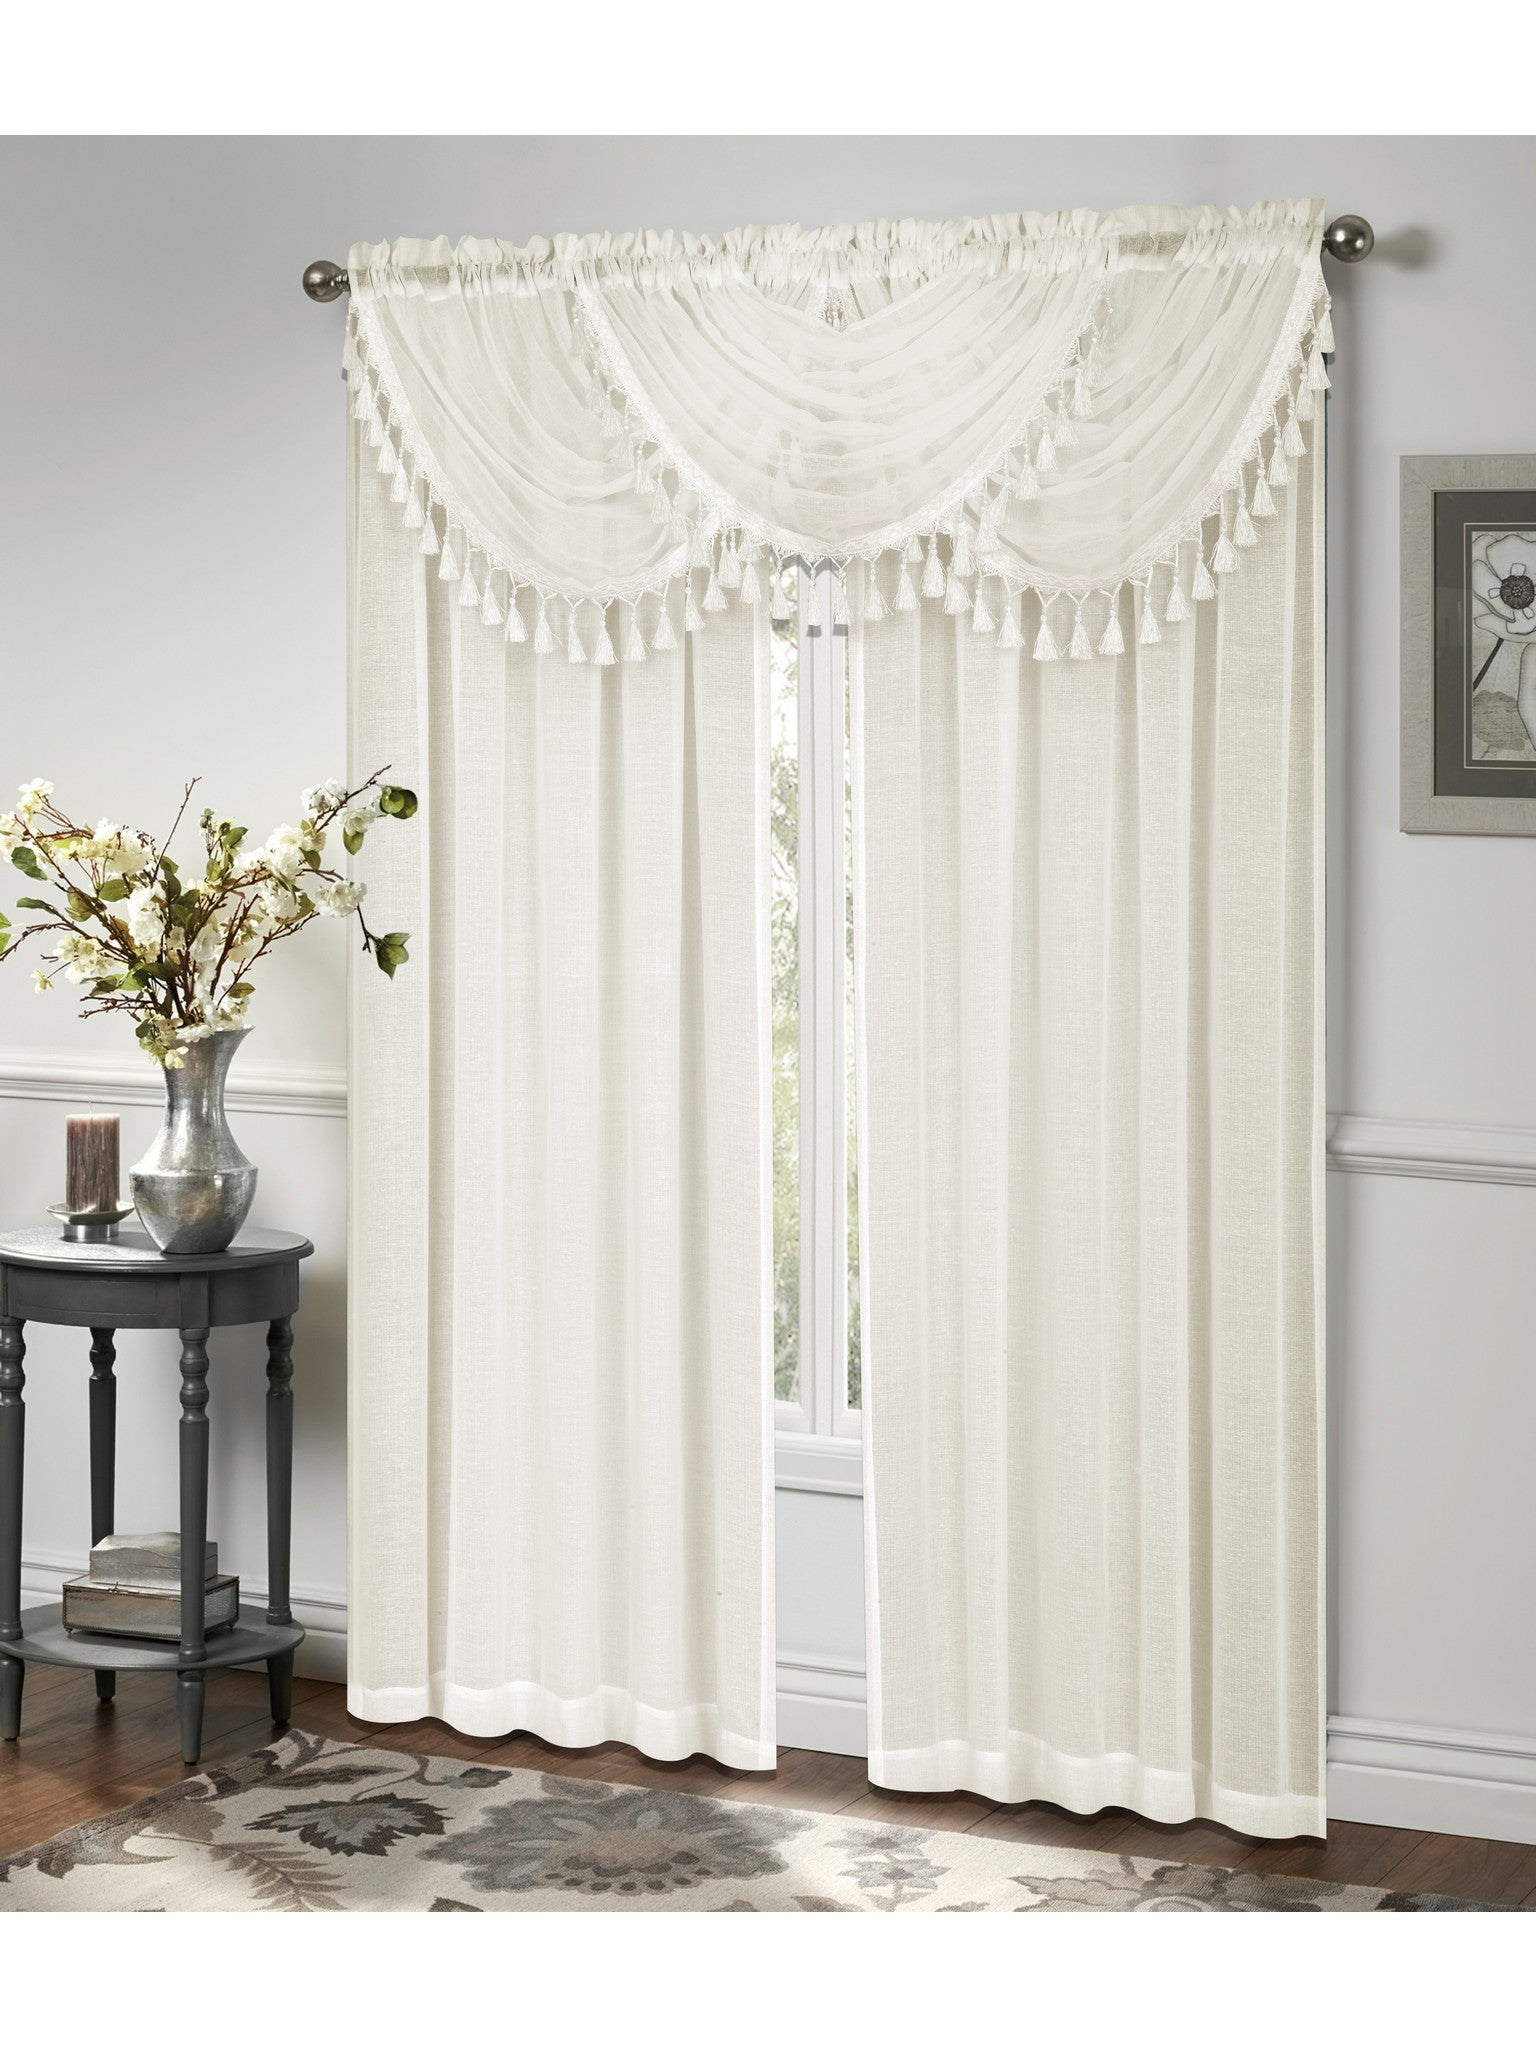 curtains products sheer full warm beige scarf designs pair valance window or of home